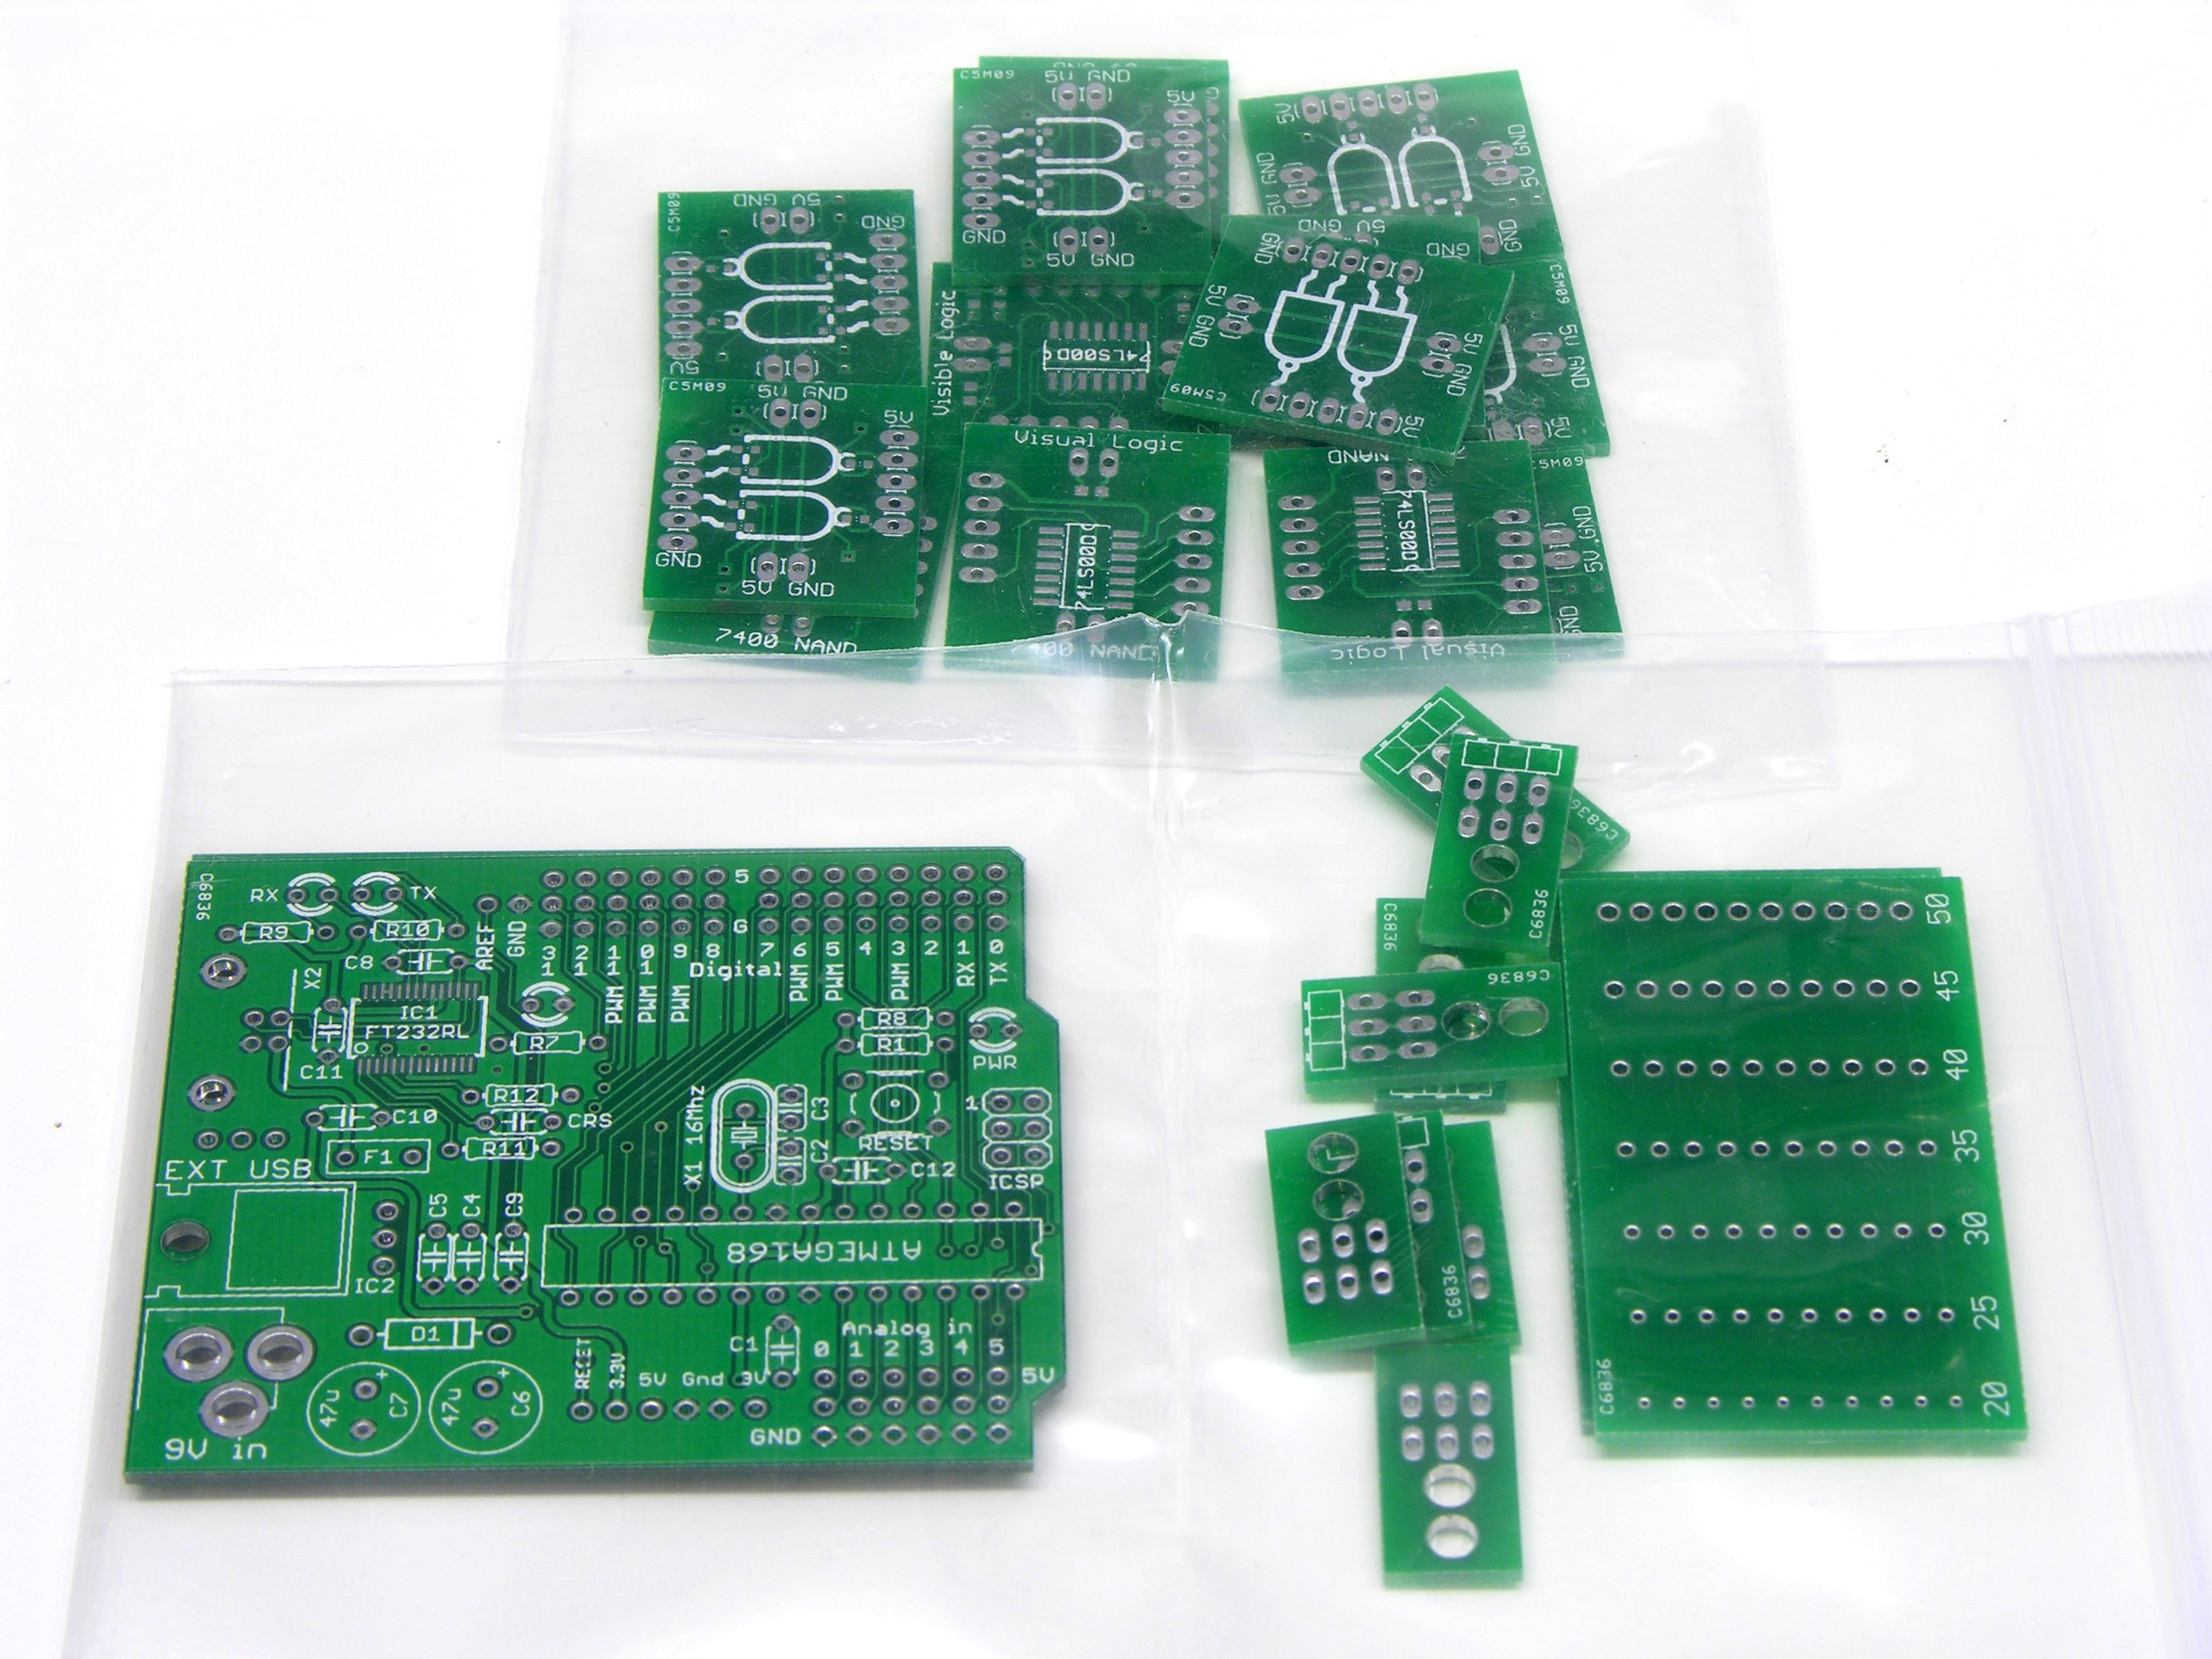 Circuits Keiths Electronics Blog Circuit Designs Just Hobby Using Led Electrical Boards From Batchpcb